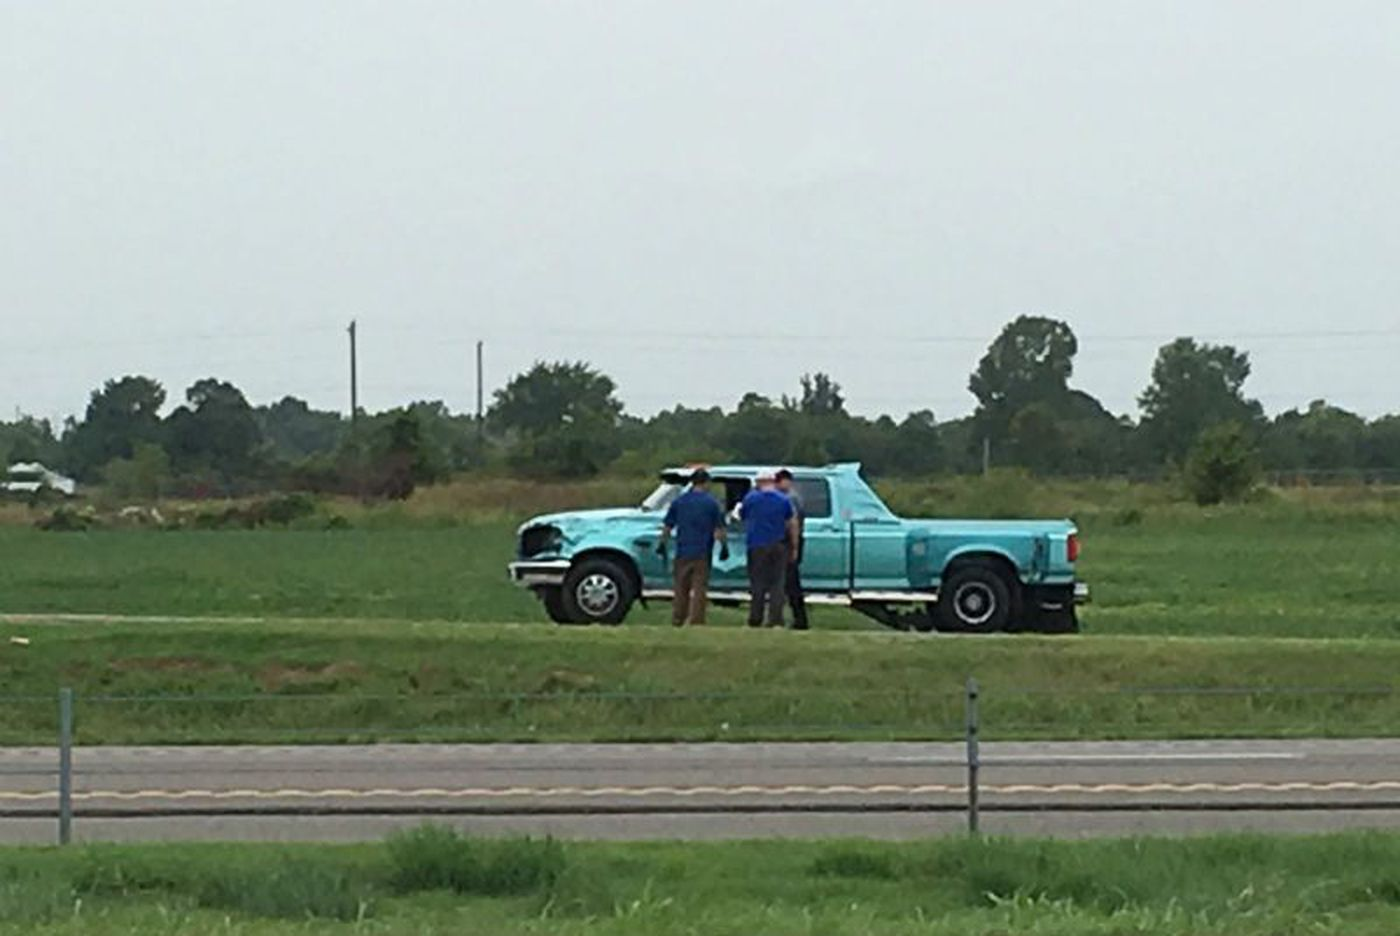 Man arrested for driving stolen truck after chase started in